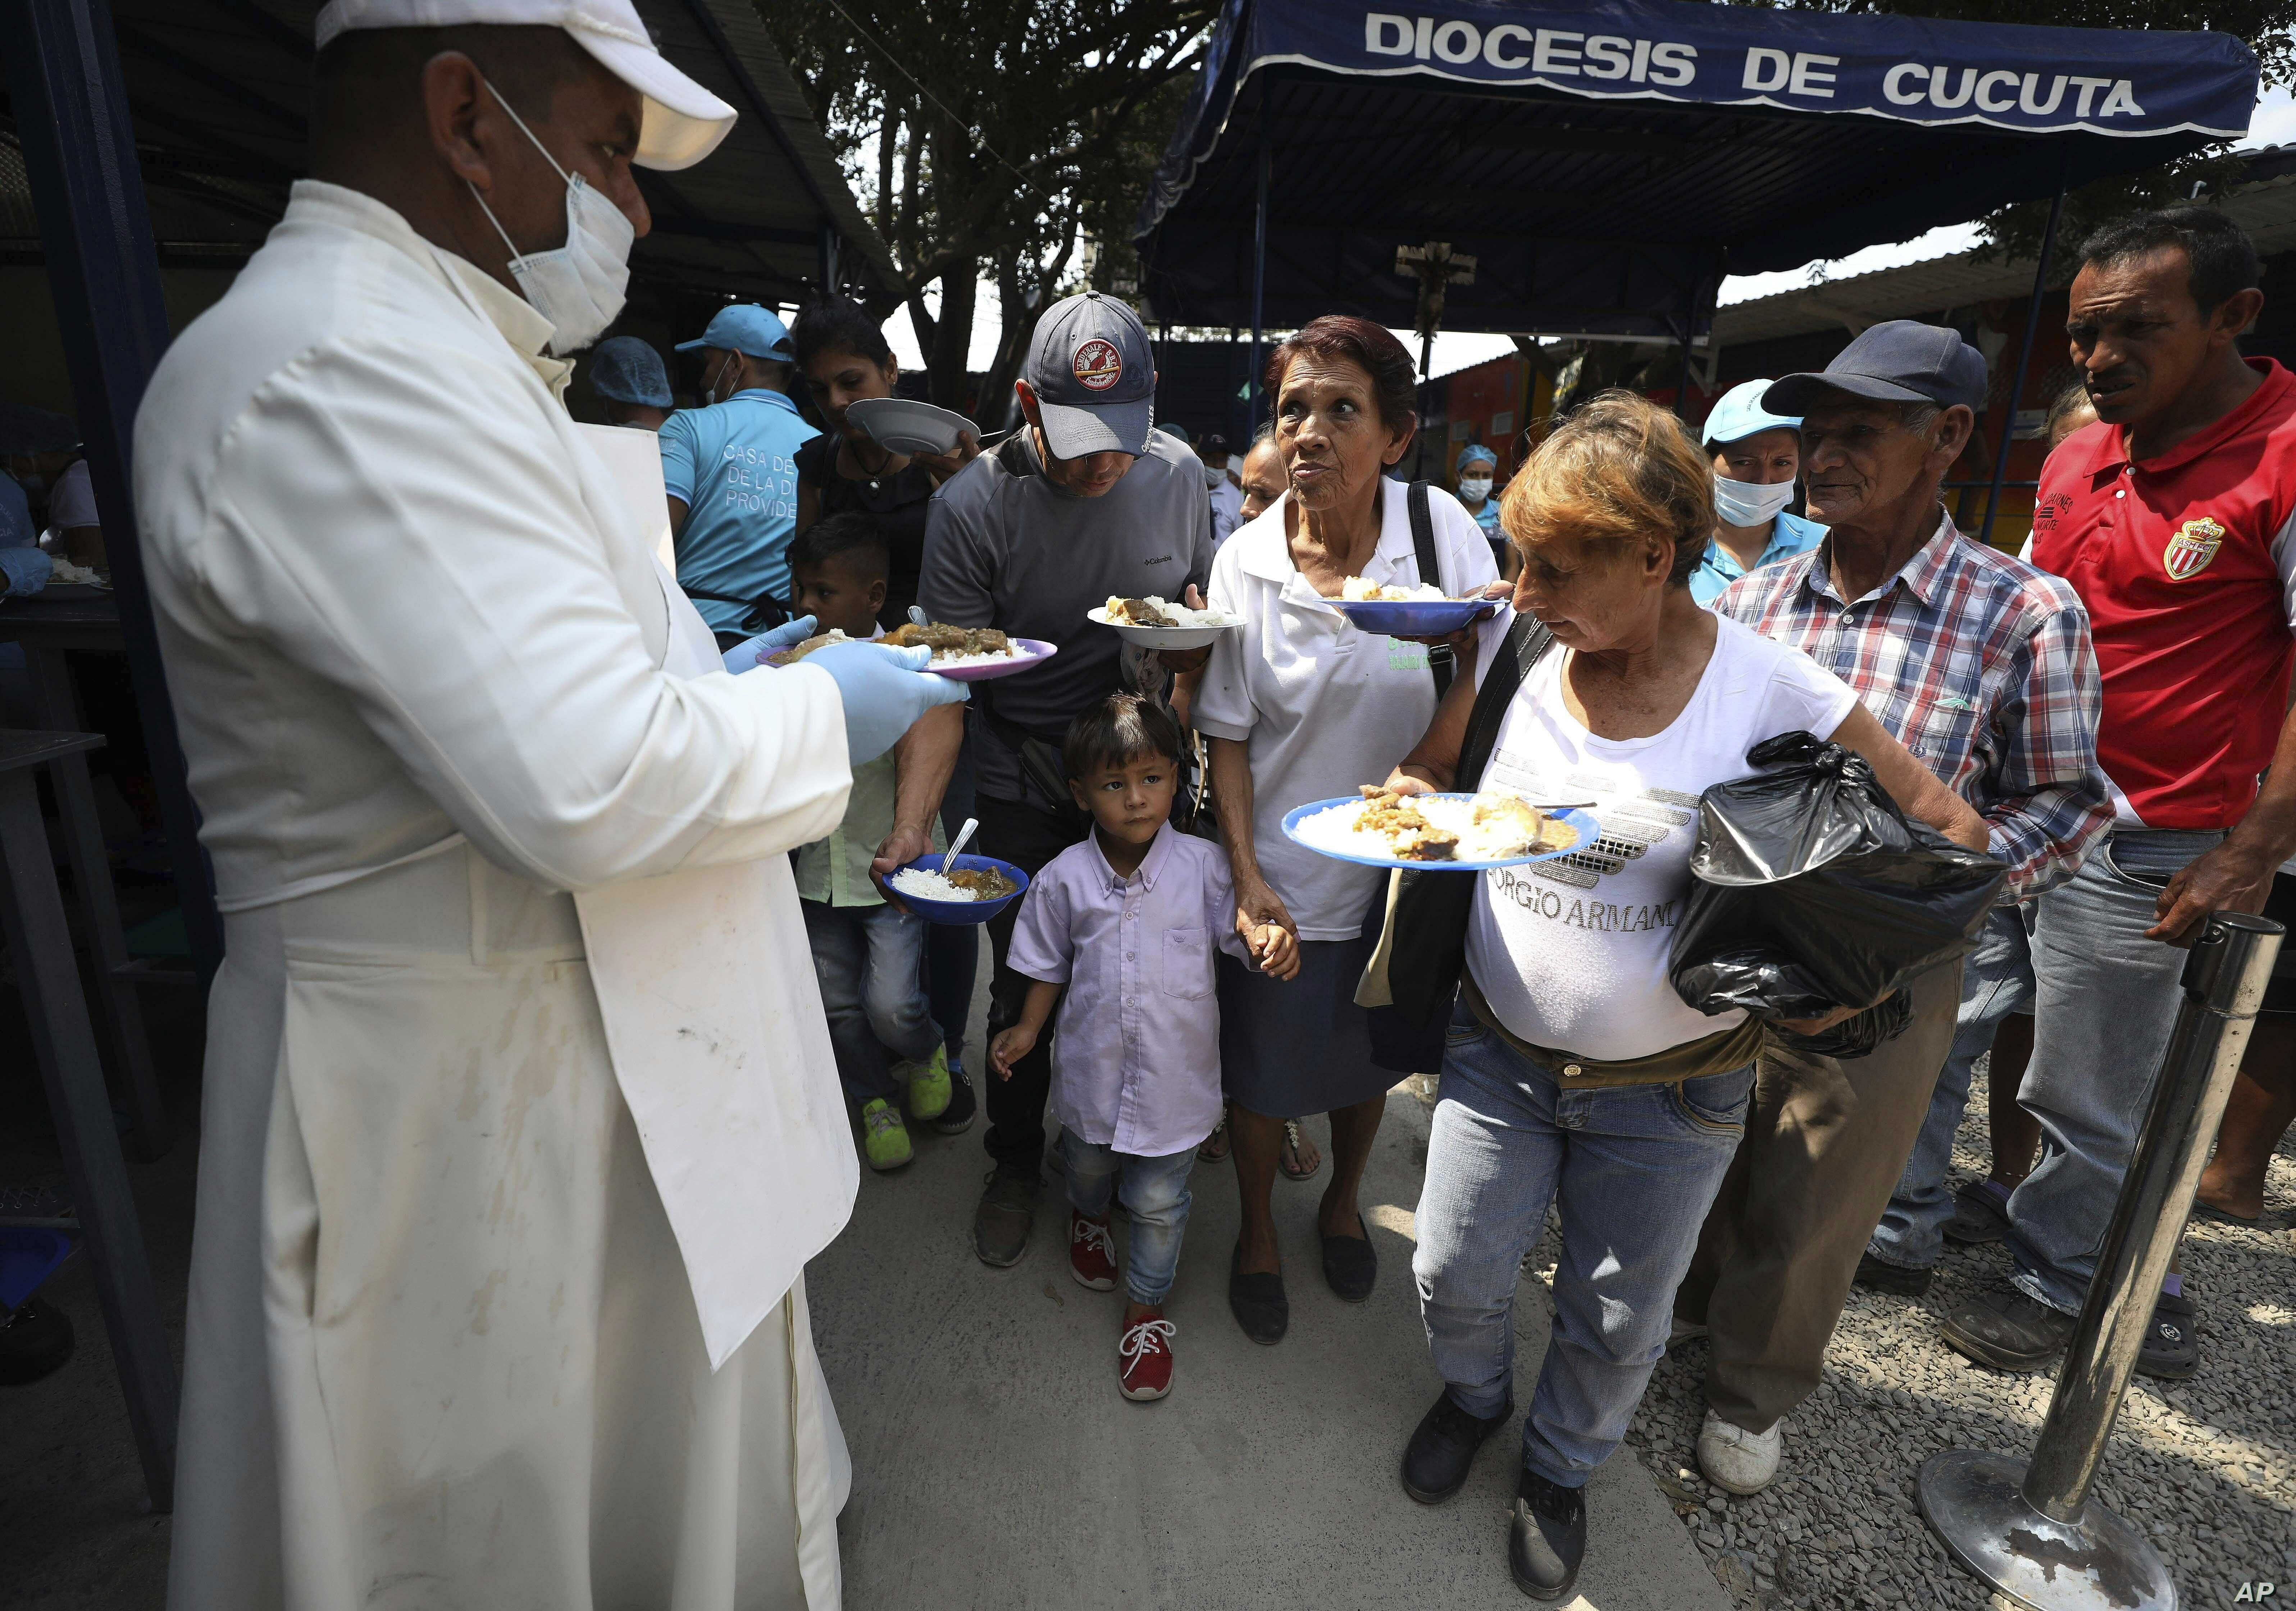 """Priest Richard Garcia  hands out free lunches to Venezuelan migrants at the """"Divina Providencia"""" migrant shelter in La Parada, near Cucuta, on the border with Venezuela, Colombia, Monday, Feb. 11, 2019."""